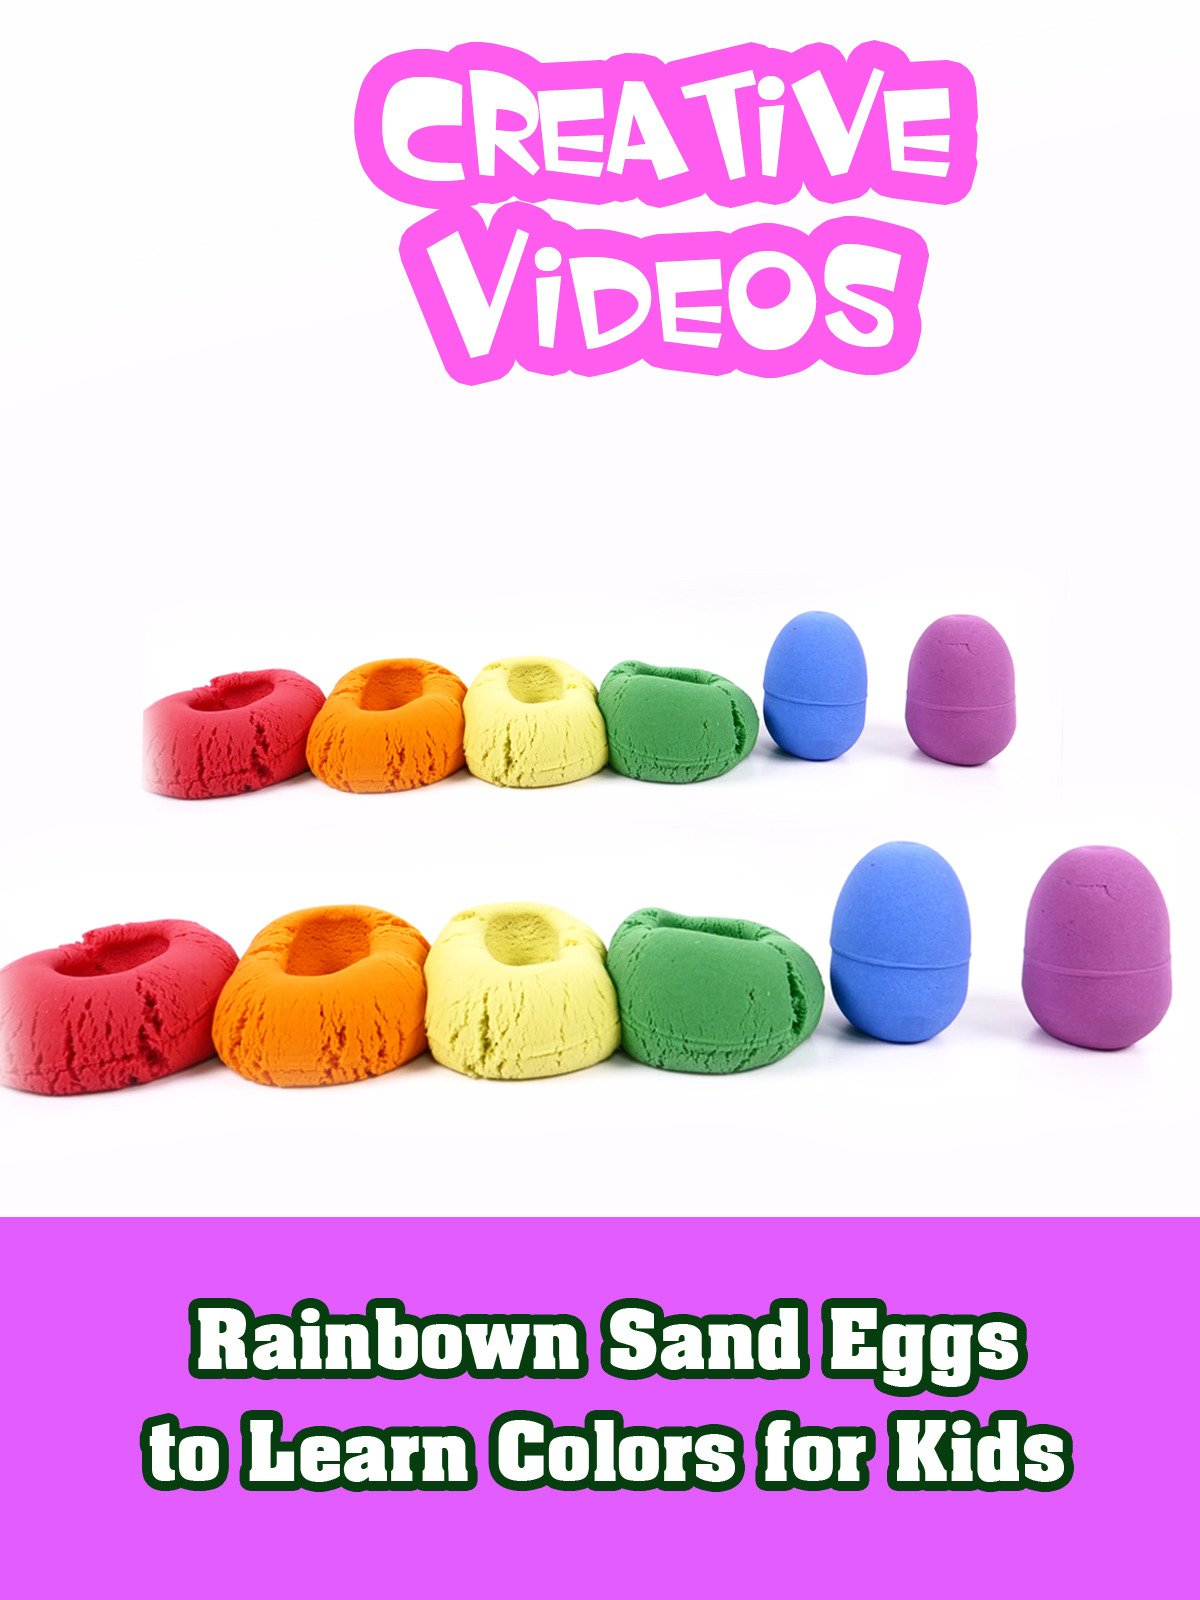 Rainbown Sand Eggs to Learn Colors for Kids